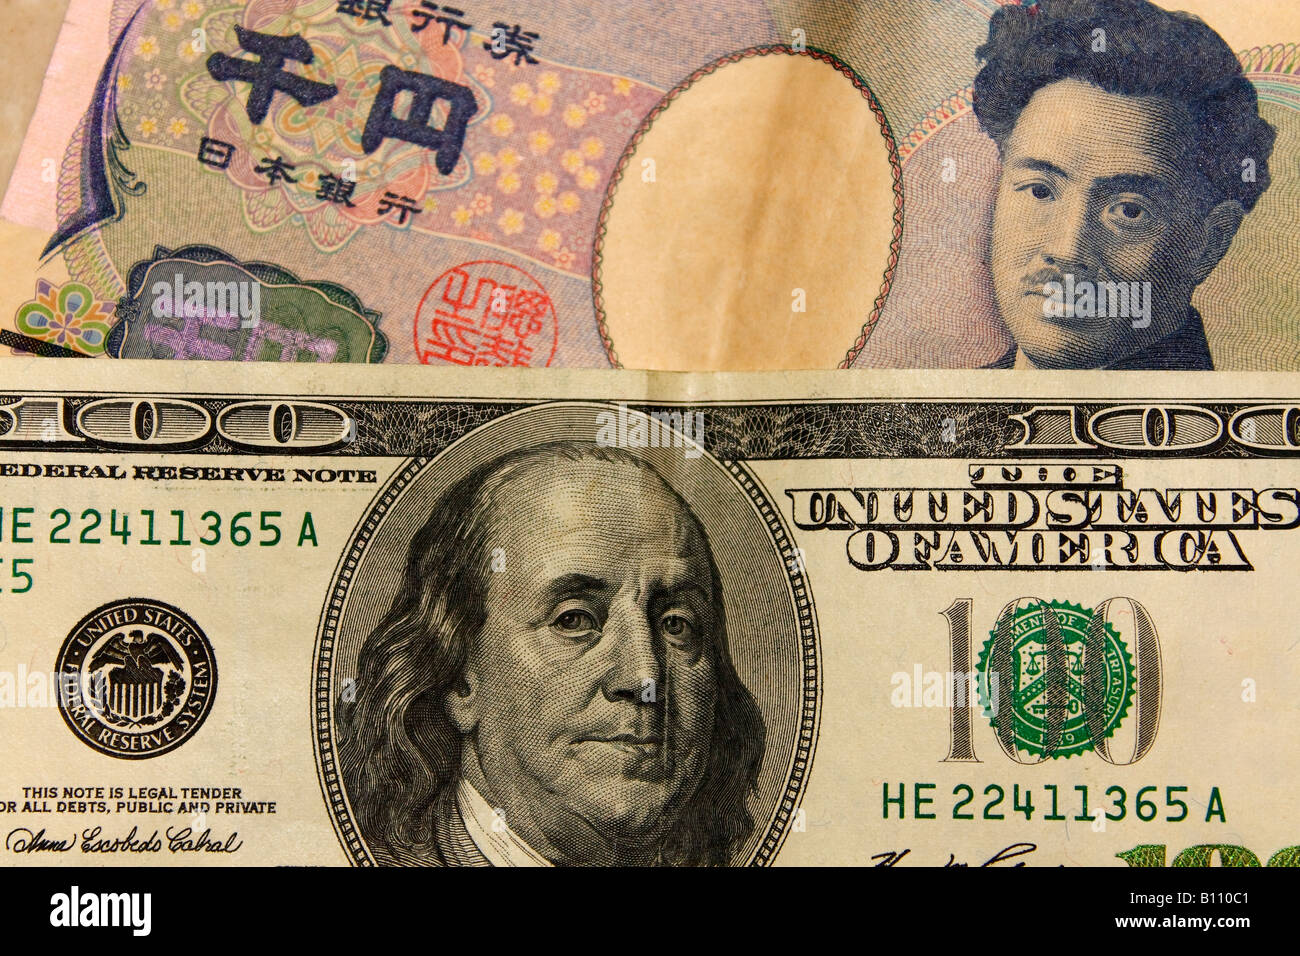 Japanese Yen and USD (American Dollar, United States Dollar) banknote money close up. - Stock Image